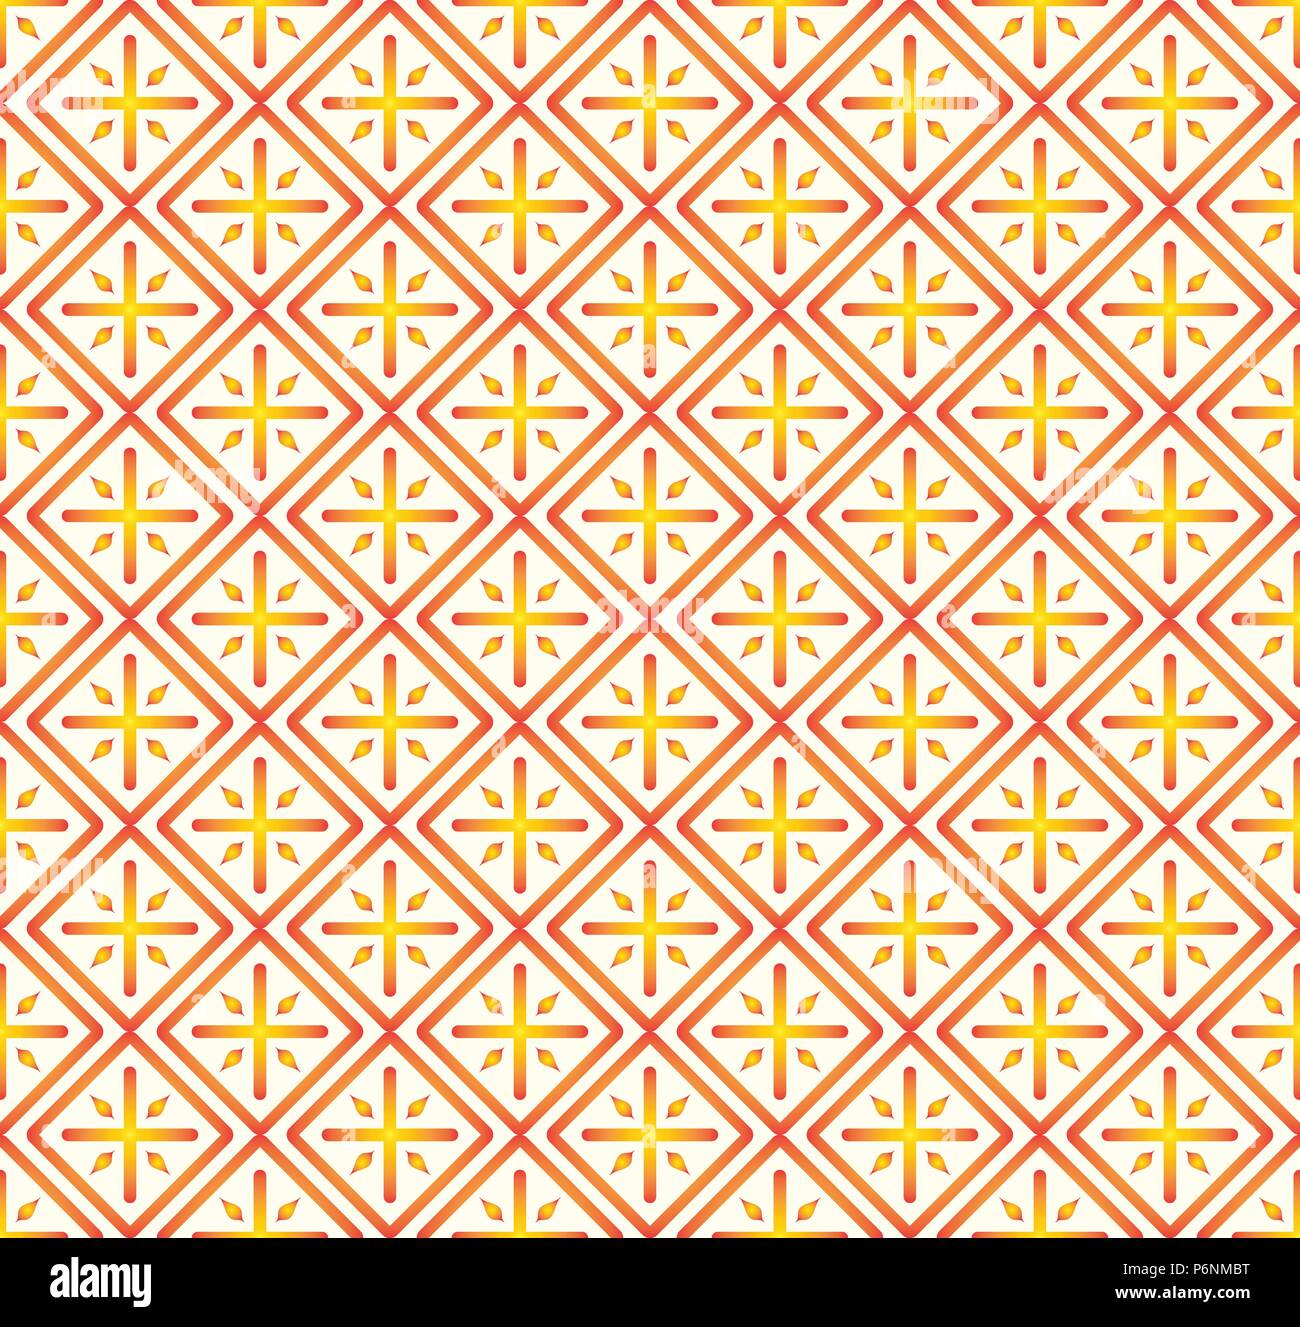 Orange Plus sign and rectangle shape seamless pattern. Abstract pattern style for graphic or modern design. - Stock Vector